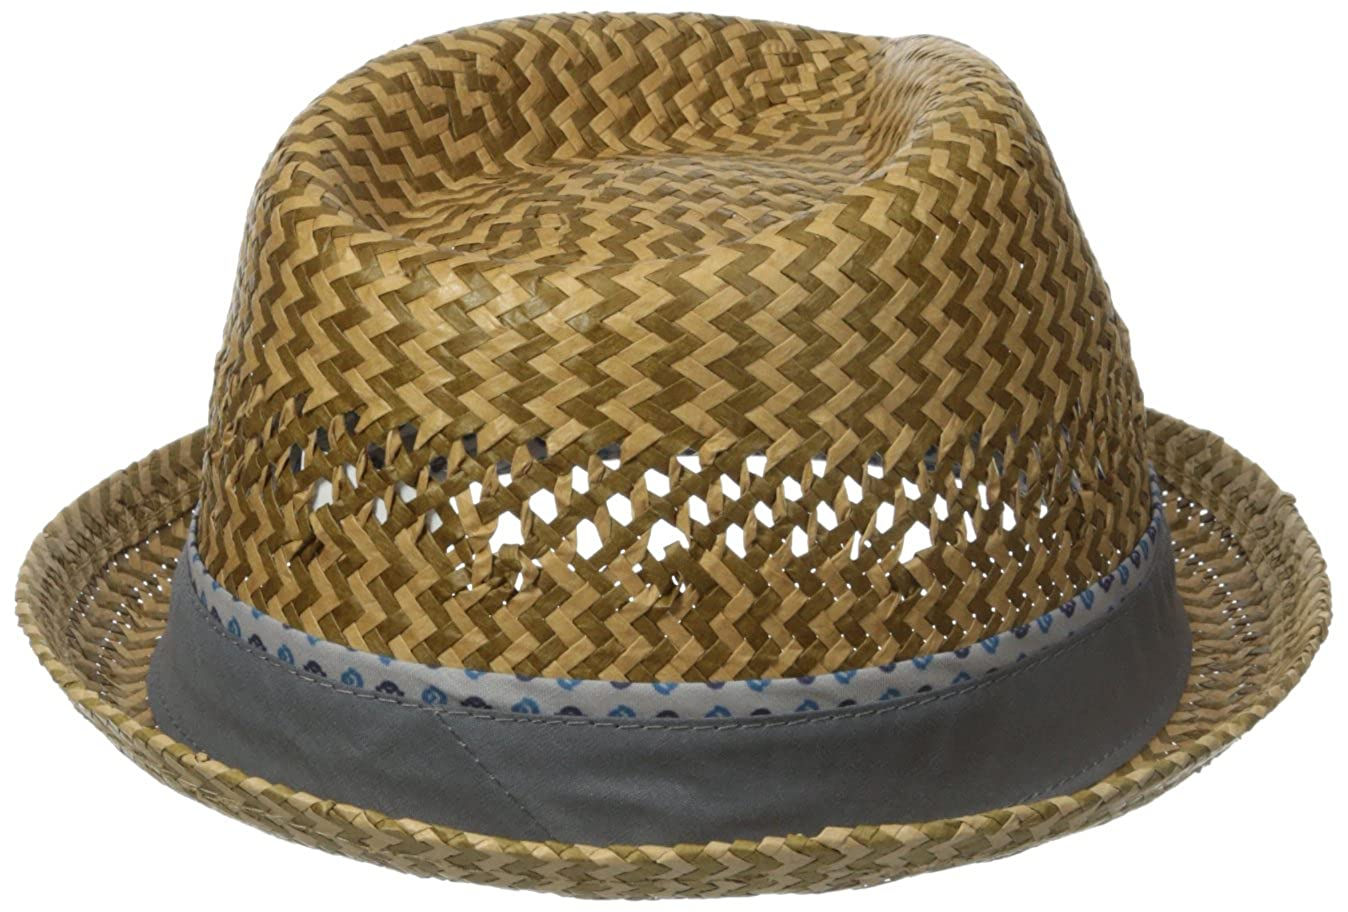 8eae7a0faf367 Amazon.com  Ben Sherman Men s Vented Straw Trilby